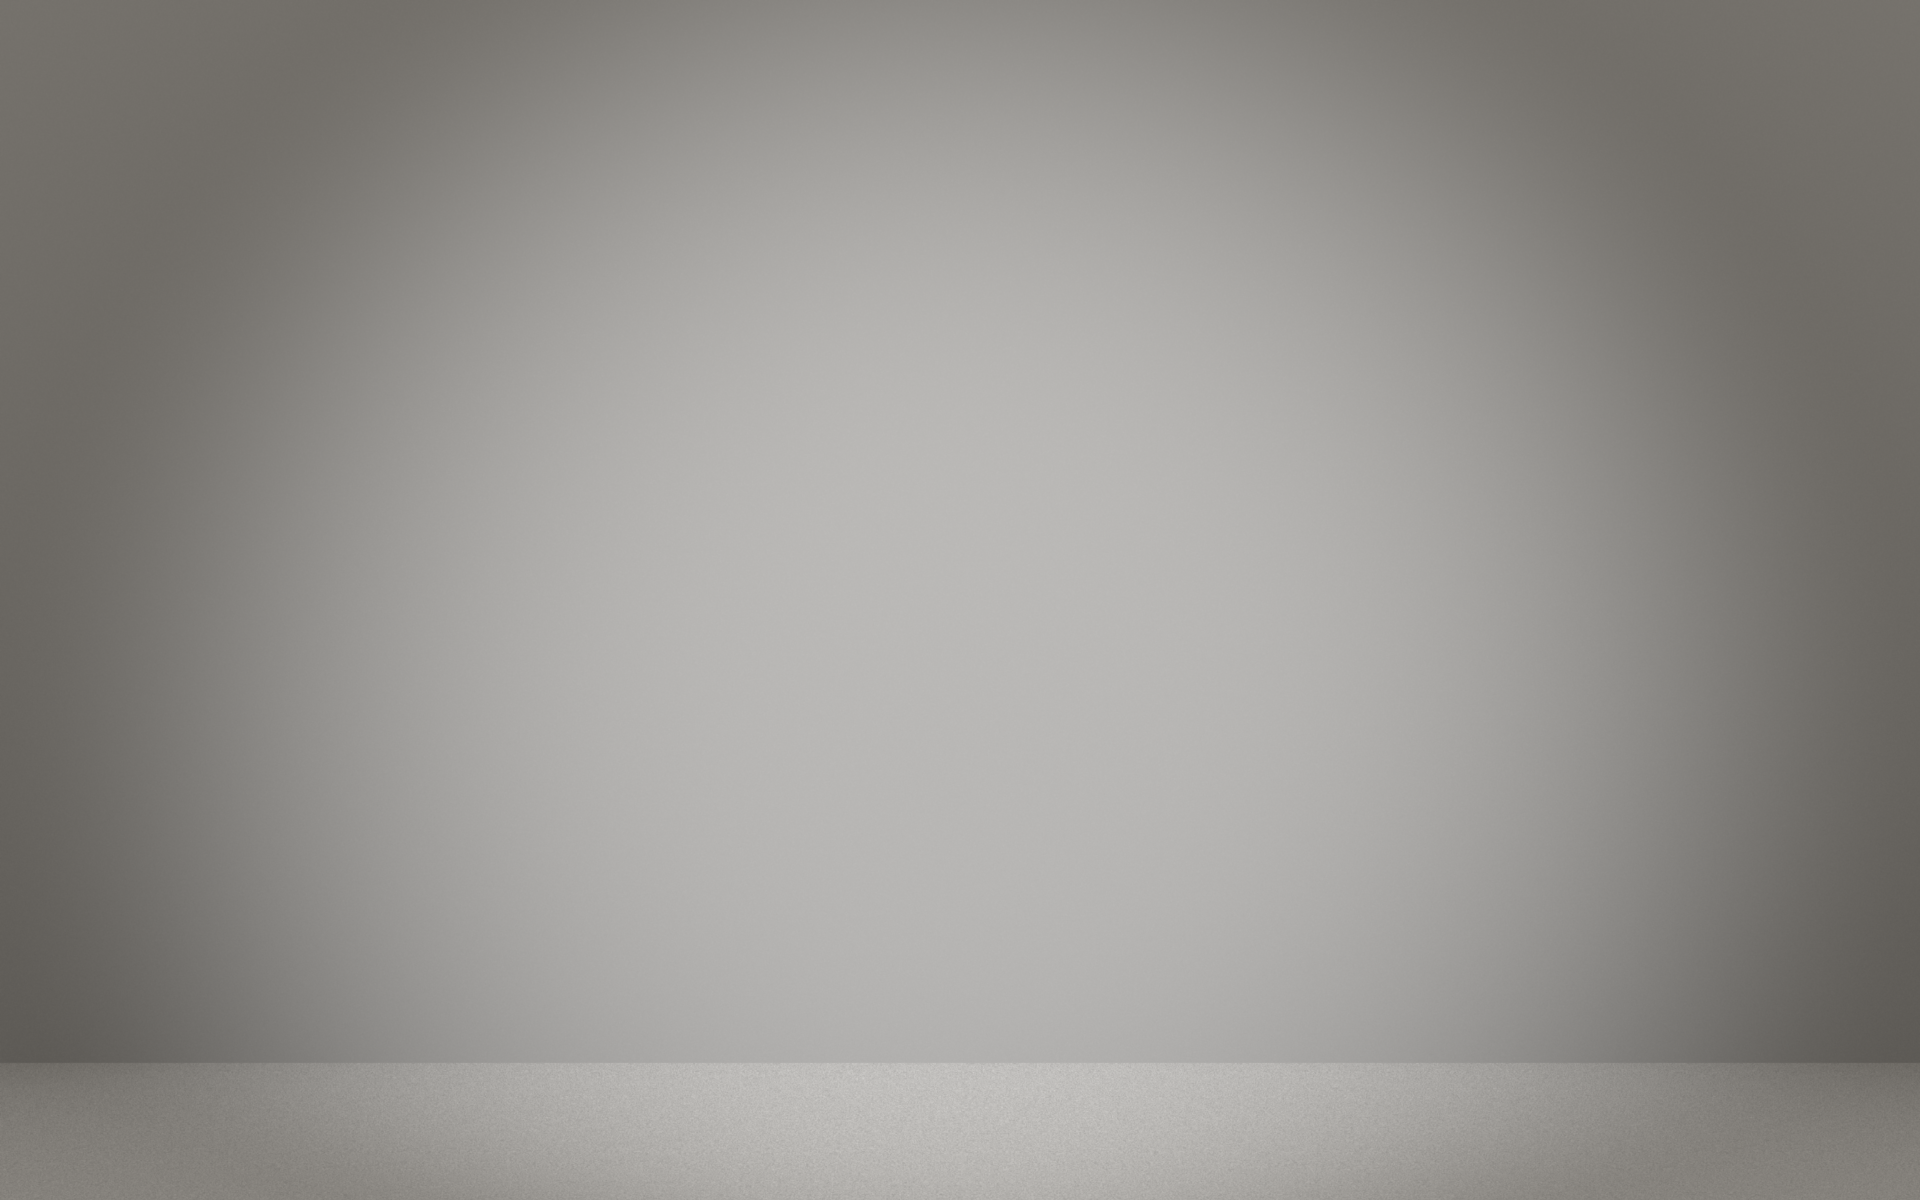 198-free-backgrounds